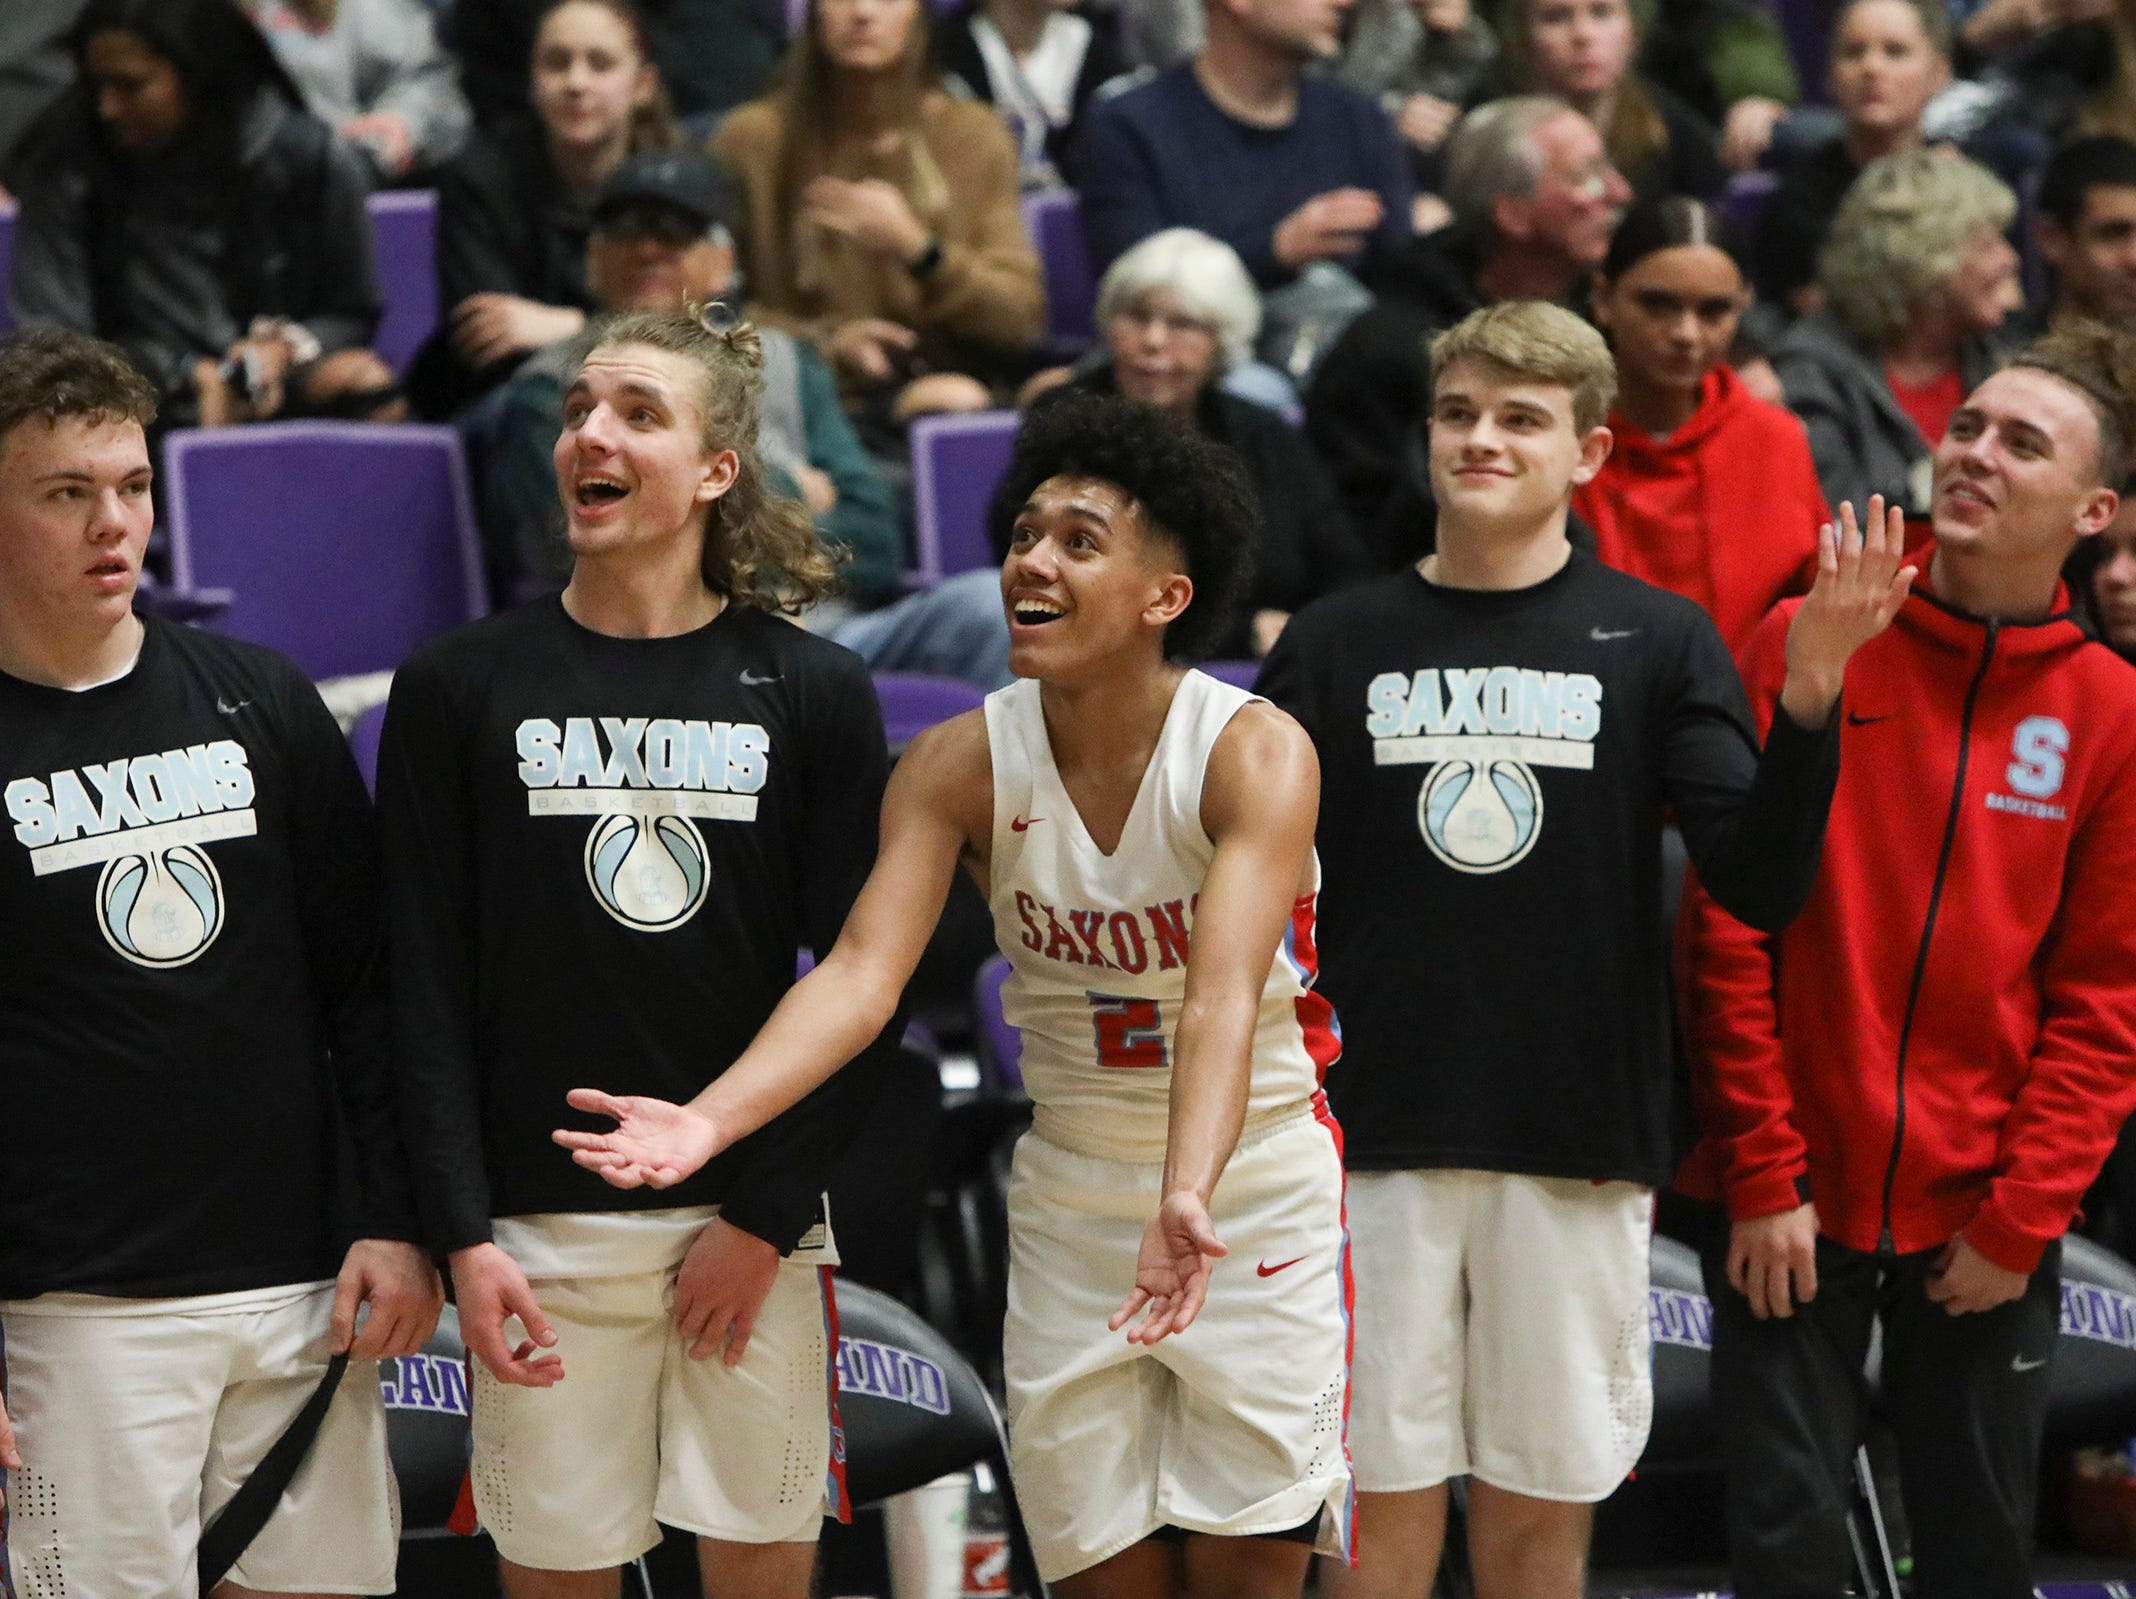 South Salem players try to pump up the student section during the OSAA 6A boys basketball state tournament quarterfinal against Tigard on Wednesday, March 6 at Chiles Center.